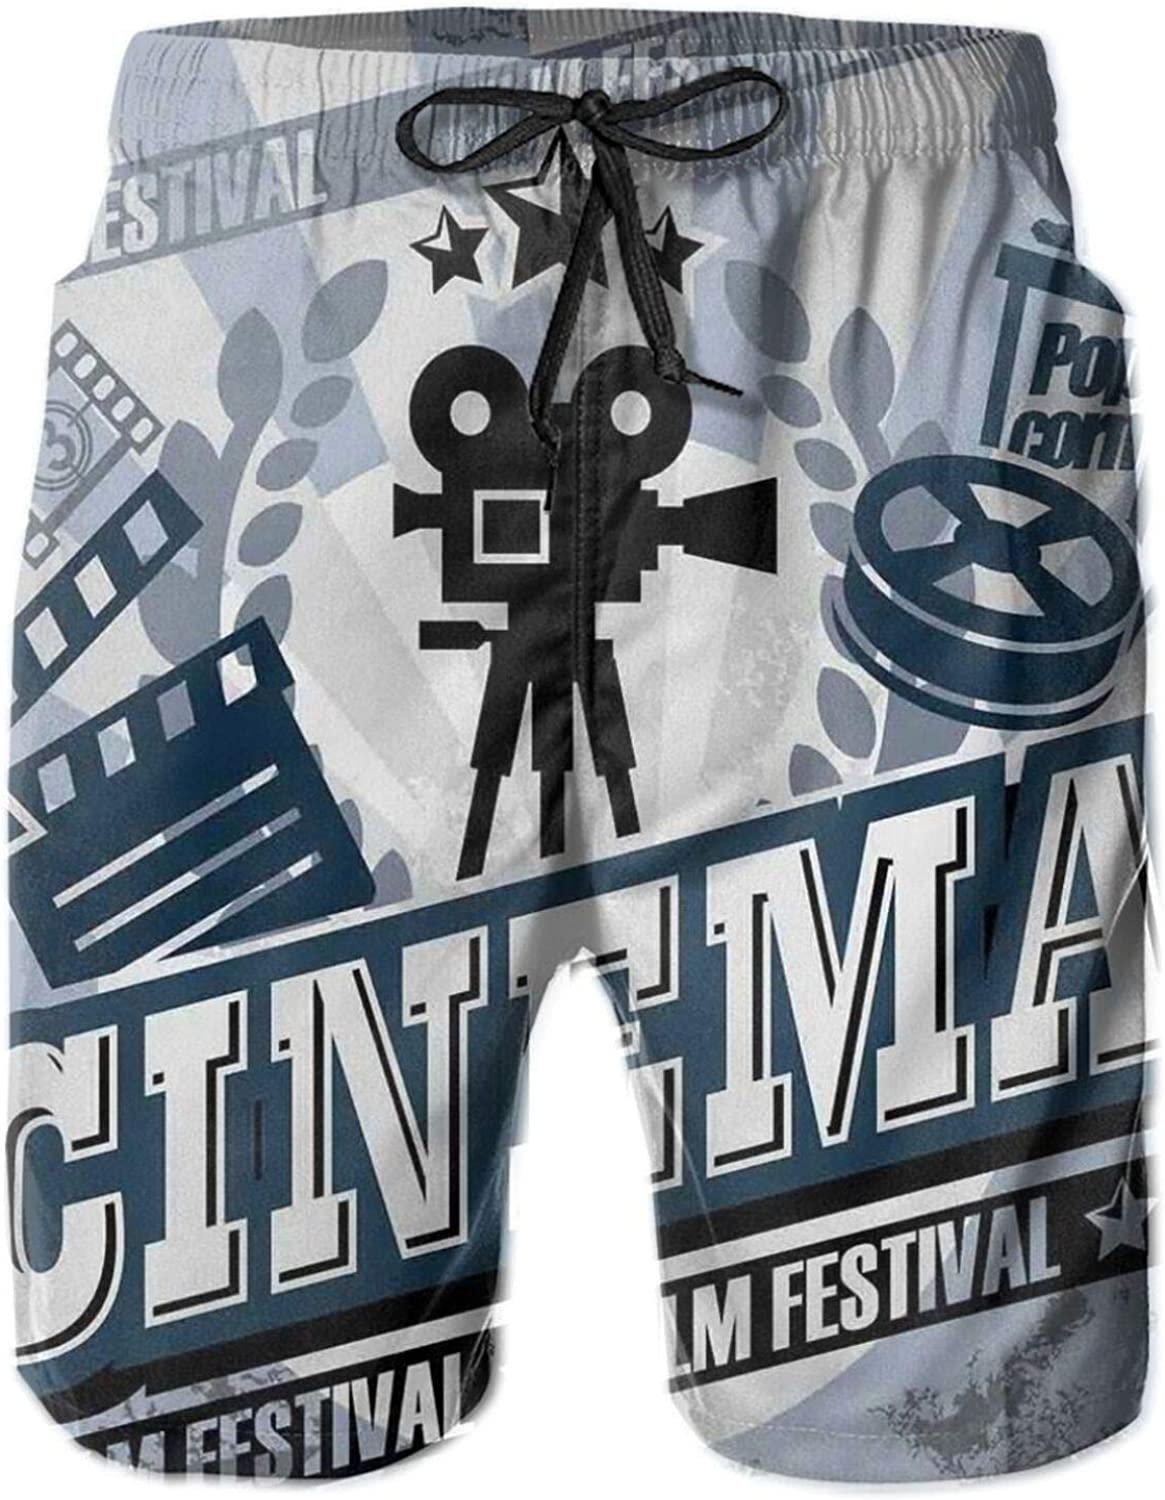 Vintage Cinema Poster Design with Grunge Effect and Old Fashioned Icons Drawstring Waist Beach Shorts for Men Swim Trucks Board Shorts with Mesh Lining,L